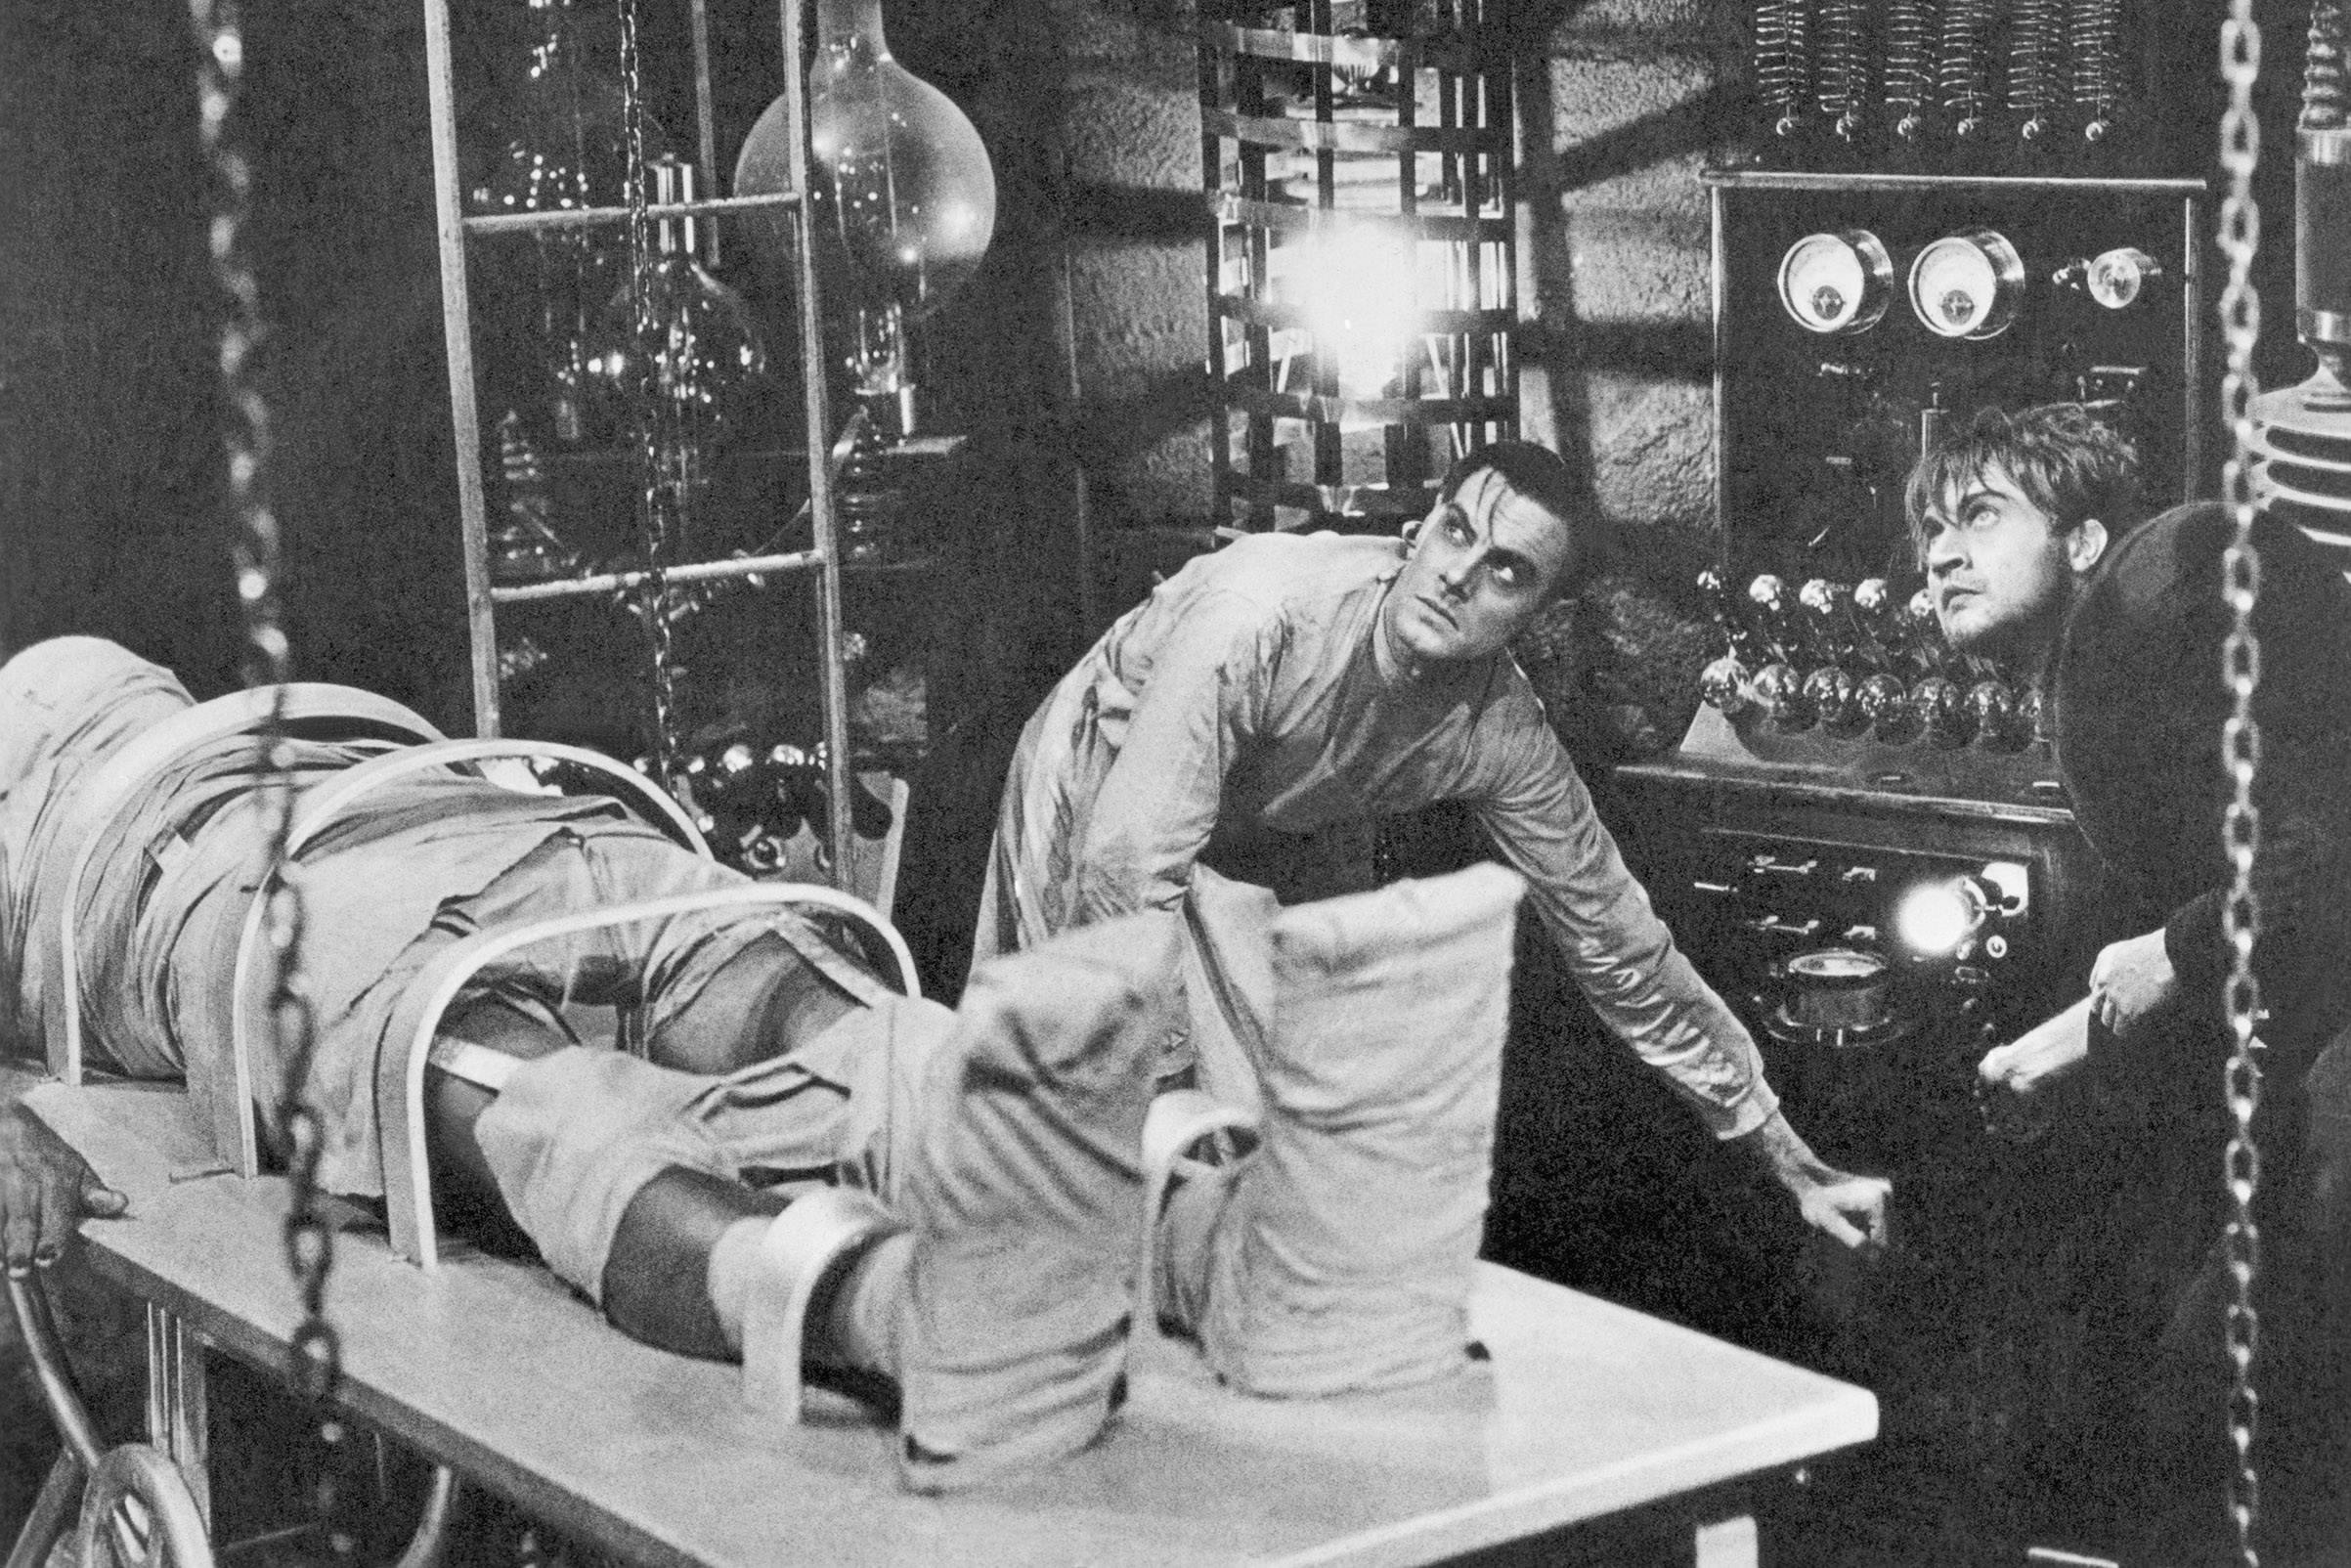 Boris Karloff, Colin Clive and Dwight Frye in a scene from the 1931 Universal Pictures production of Frankenstein.